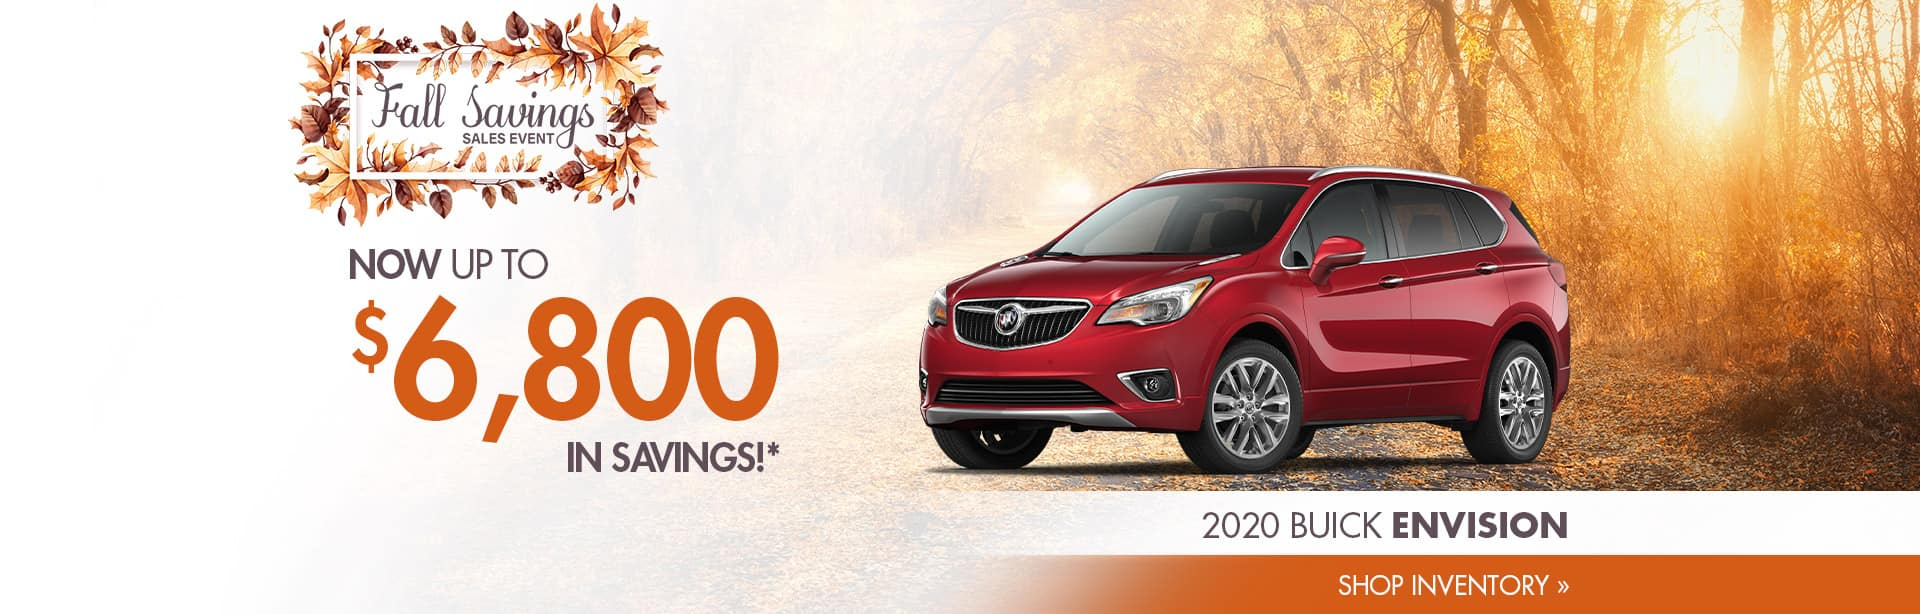 Save on a New Buick Envision near Rosedale, Indiana